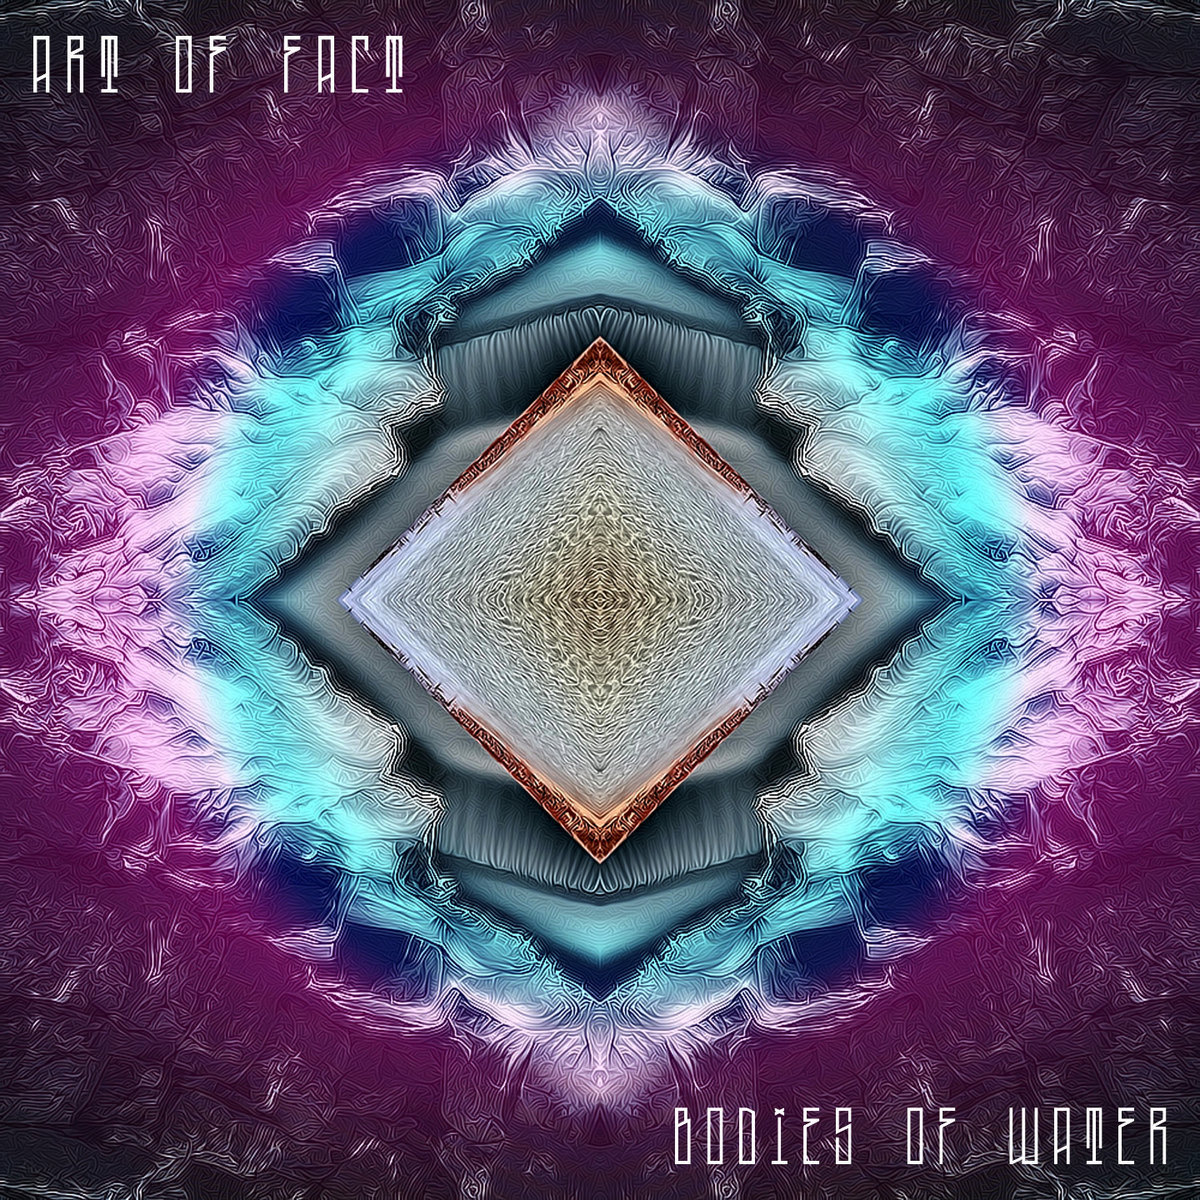 Art of Fact - Velvet Dew Drops (SOULULAR Remix) @ 'Bodies of Water' album (electronic, dubstep)